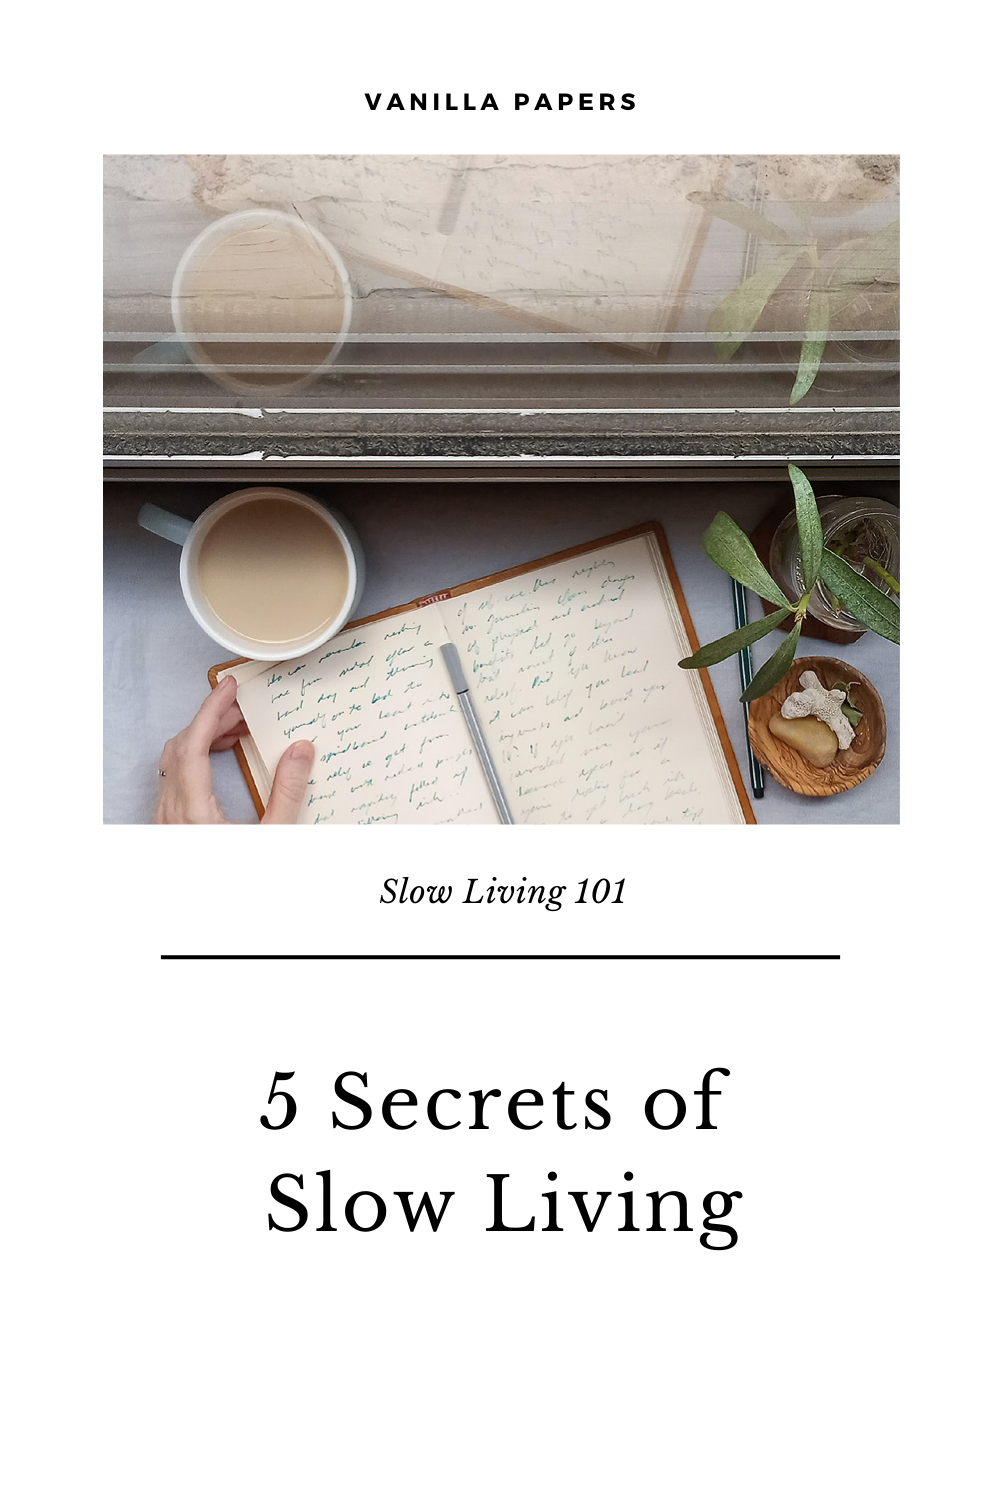 Build the 5 small and consistent habits you need for a slower life with my free email challenge. #slowliving #slowlivinglifestyle #vanillapapers #slowlivingaesthetic